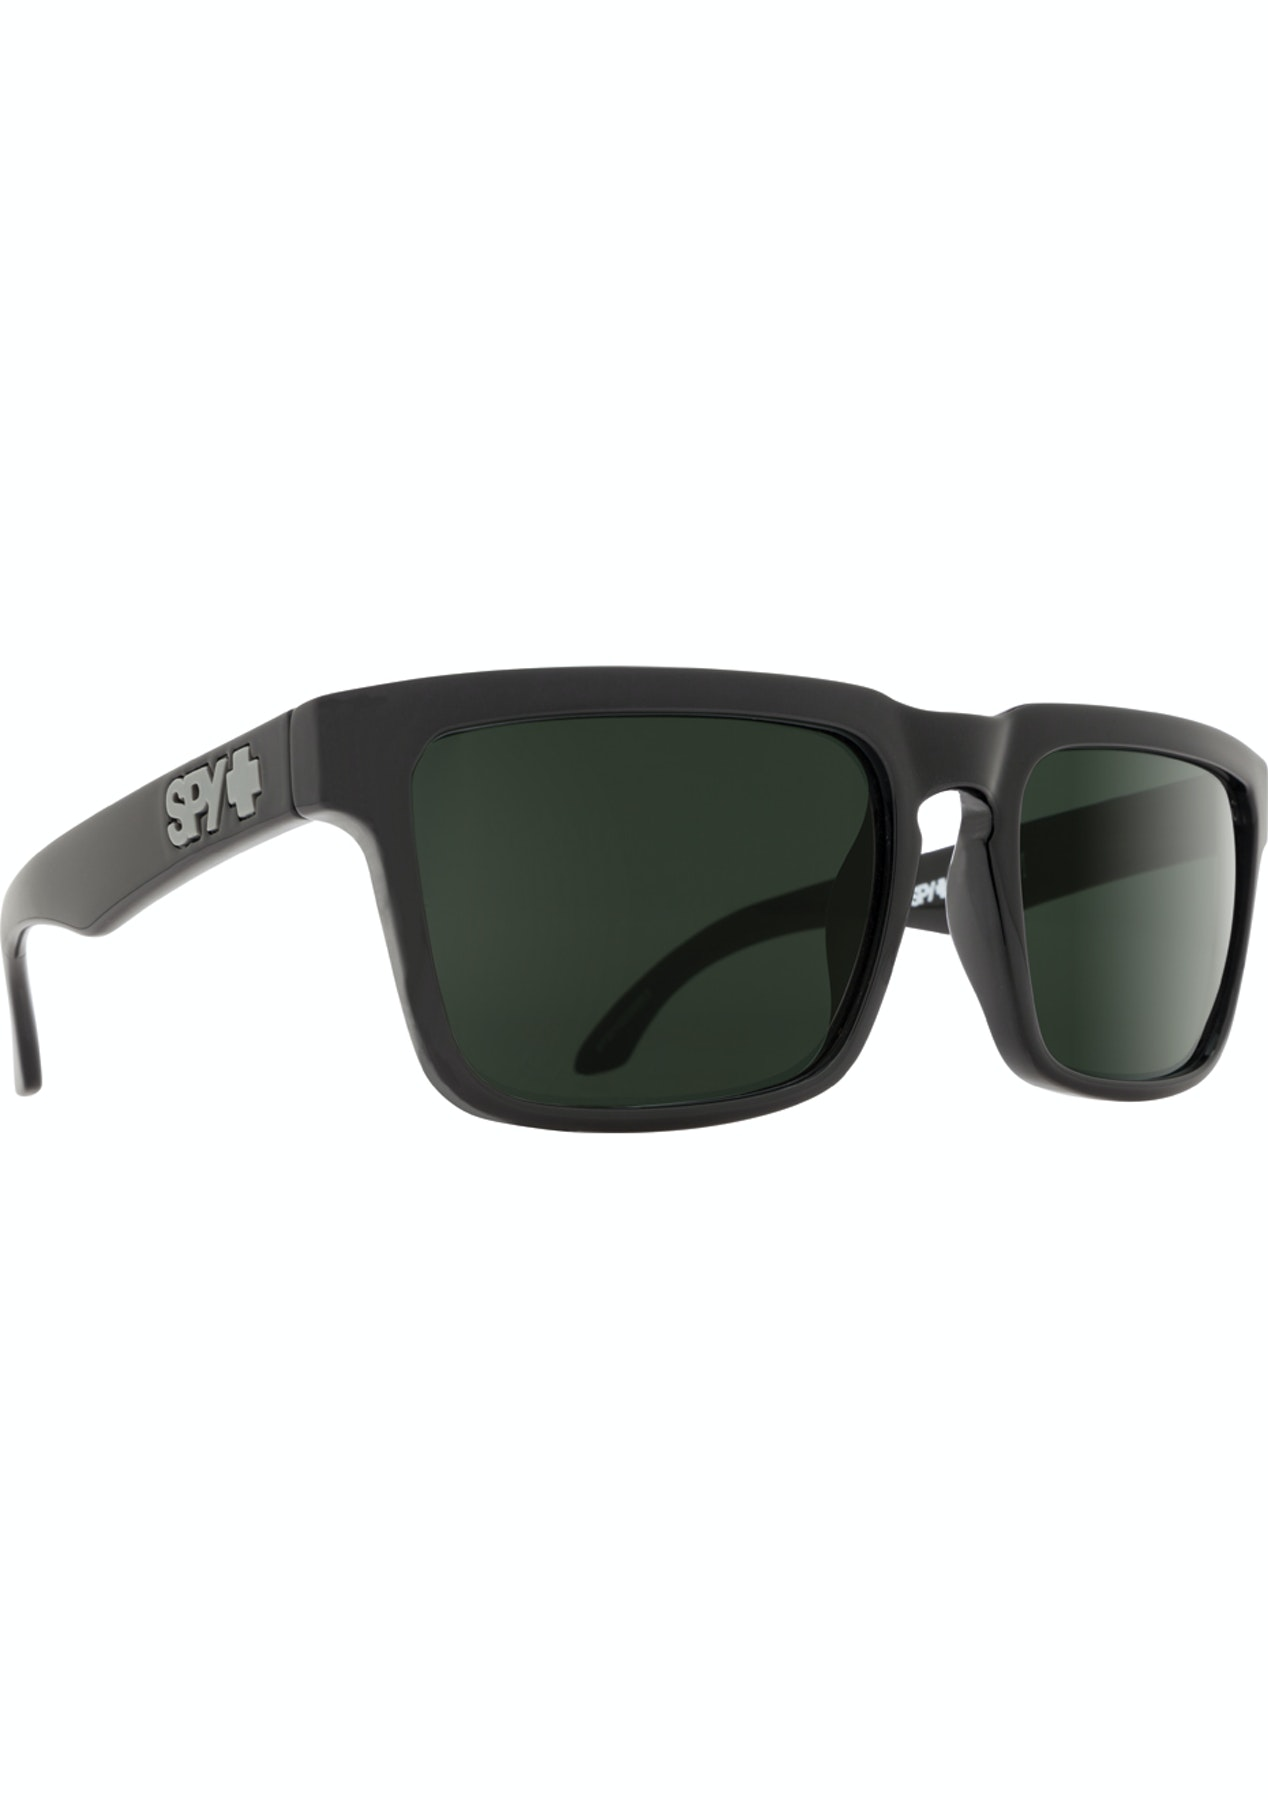 1e1bf95672b1 SPY Helm Sunglasses - Black - Happy Grey Green - Boxing Day Mens Clearance  - Onceit